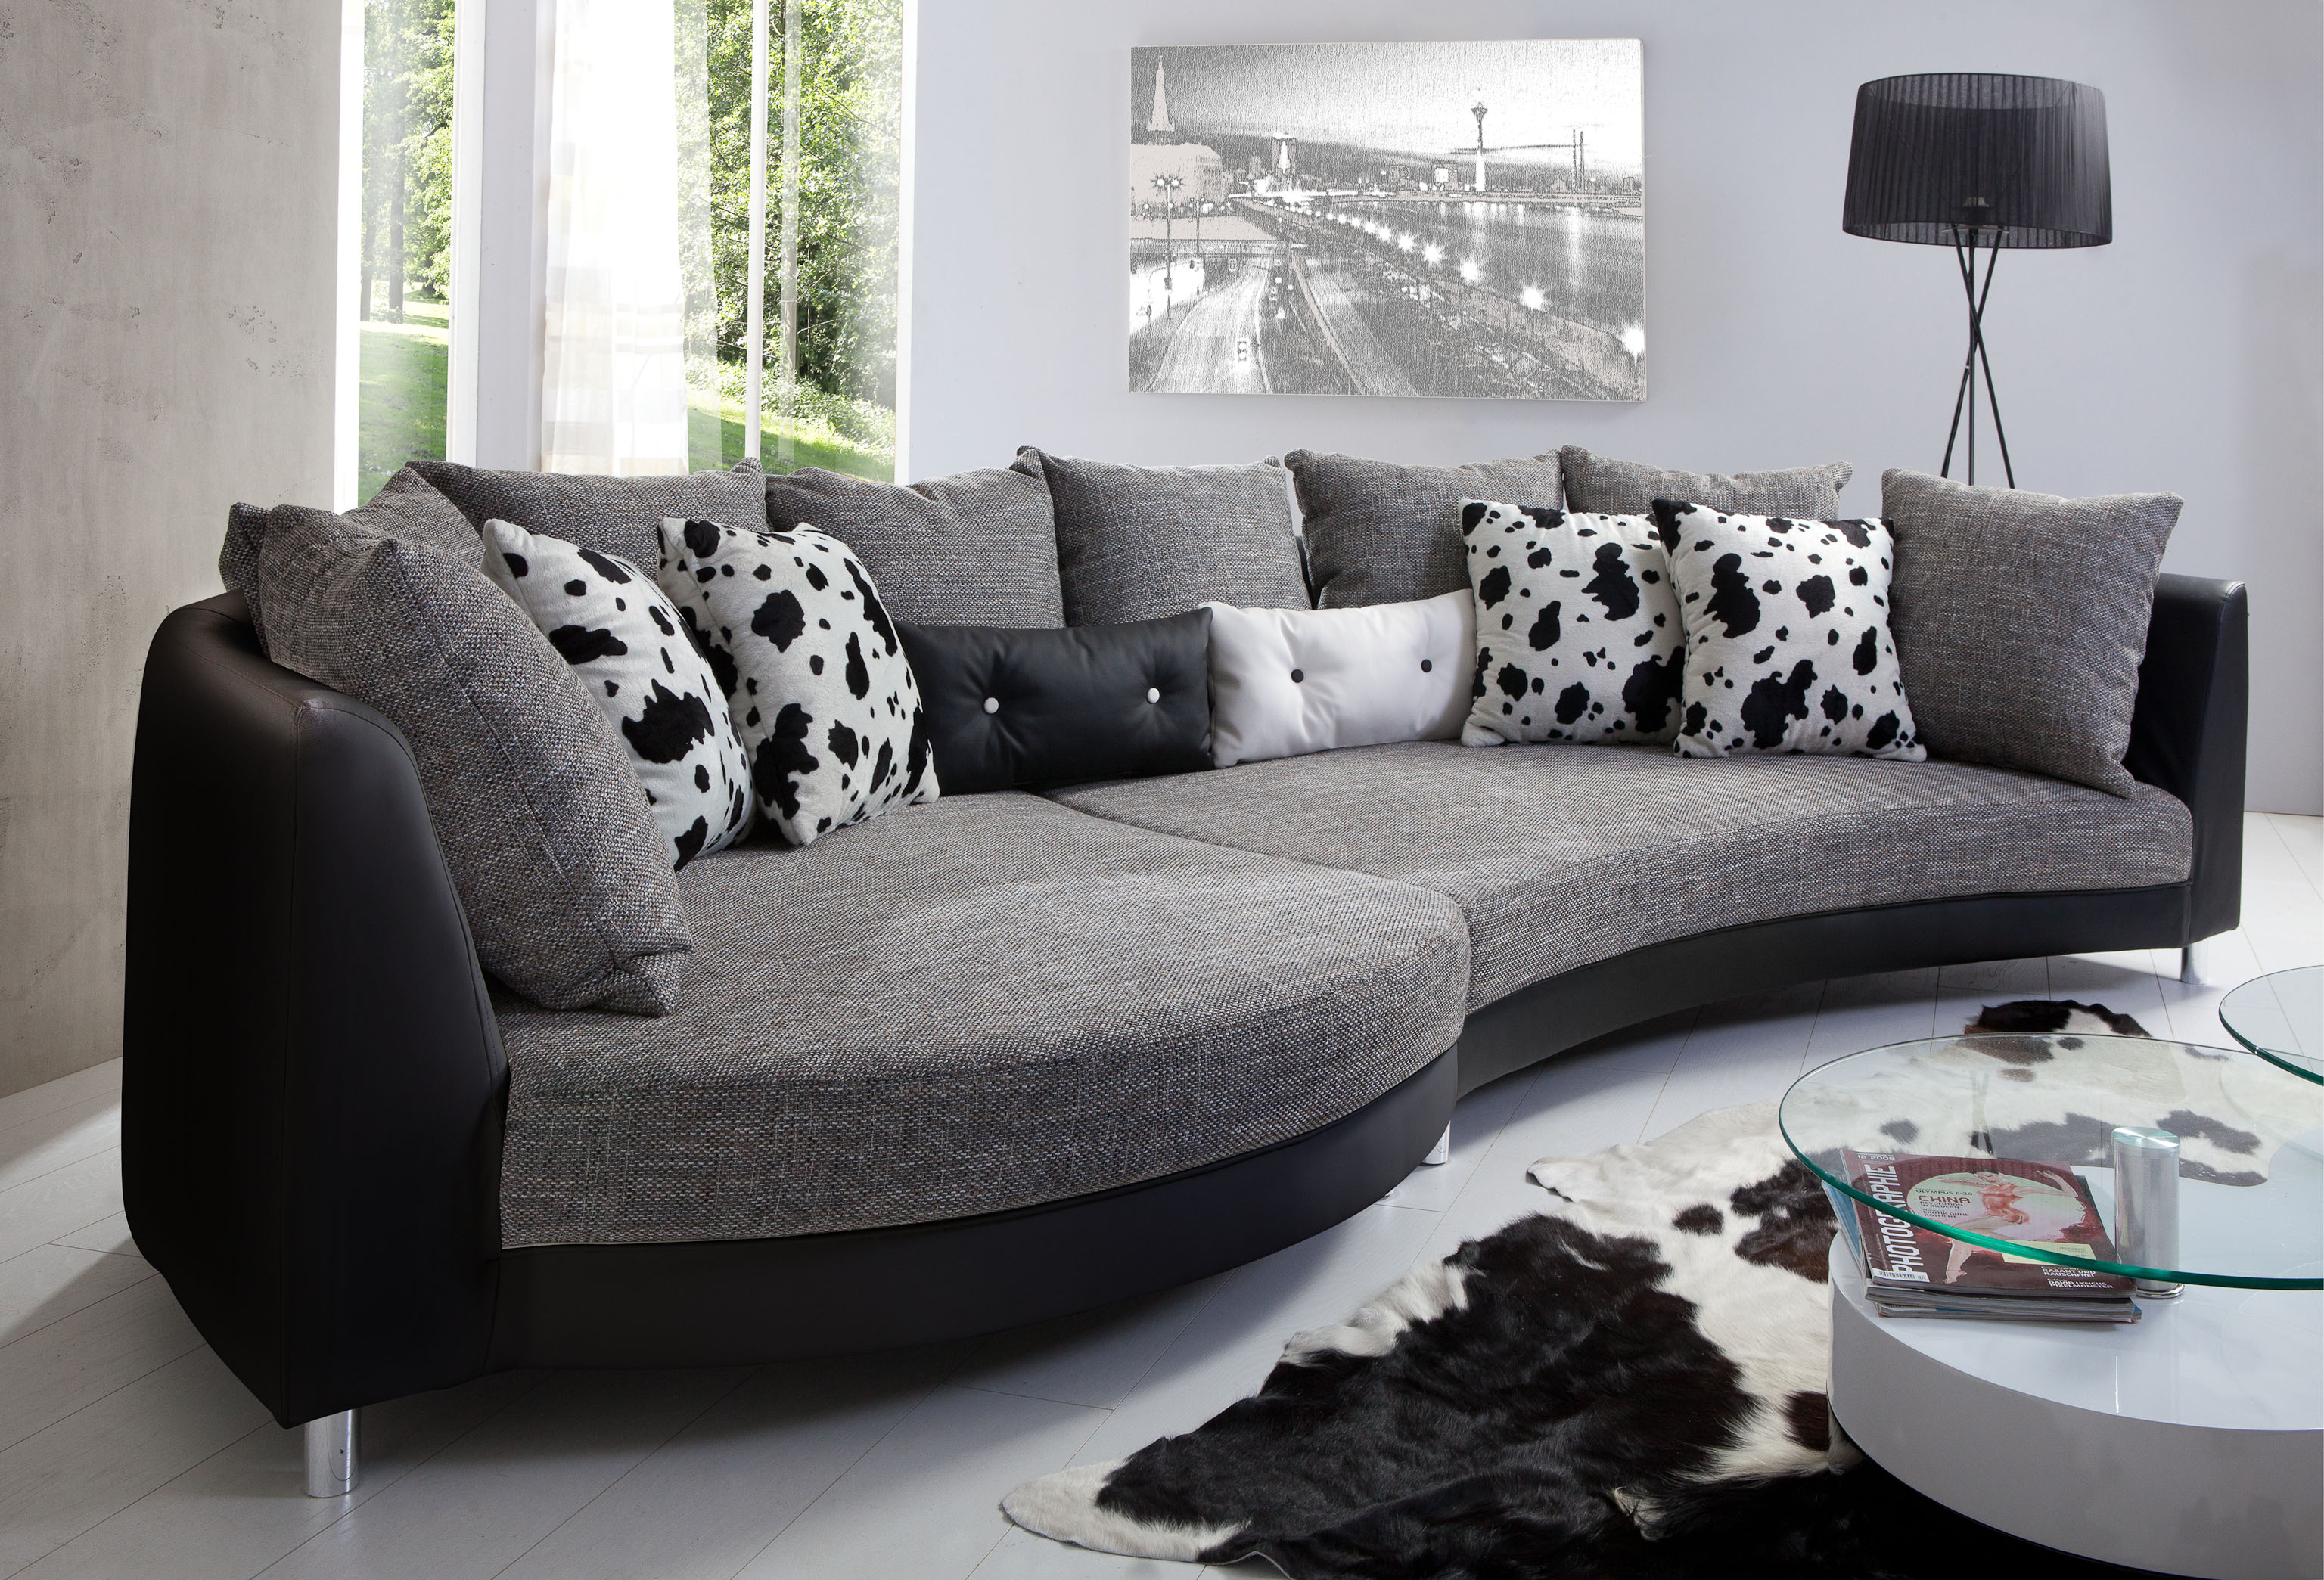 couch fuentello geschwungene form ecksofas sofas couches wohnzimmer m. Black Bedroom Furniture Sets. Home Design Ideas